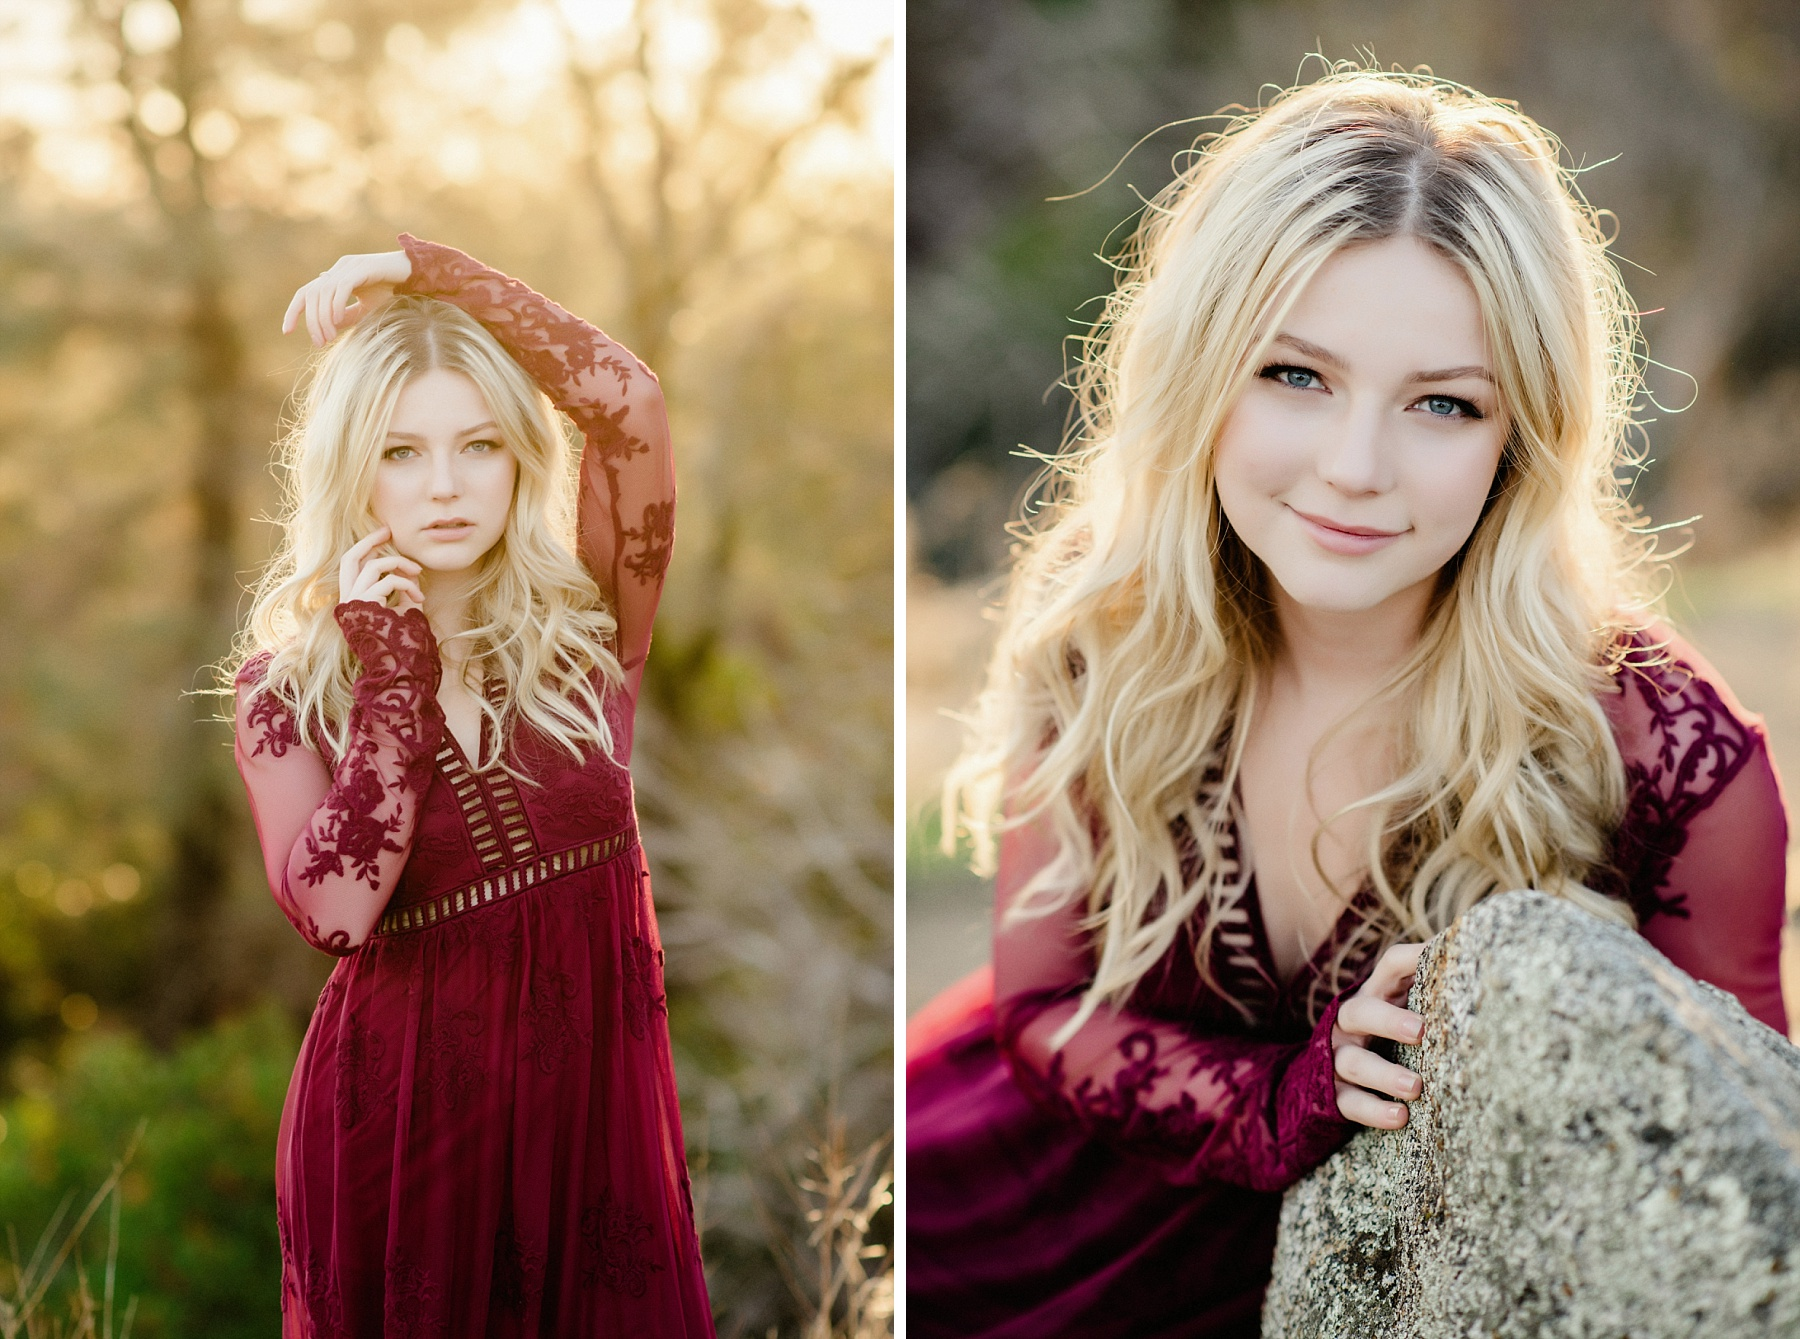 Roseville Senior Portrait Photographer - Sarah Maren Photography